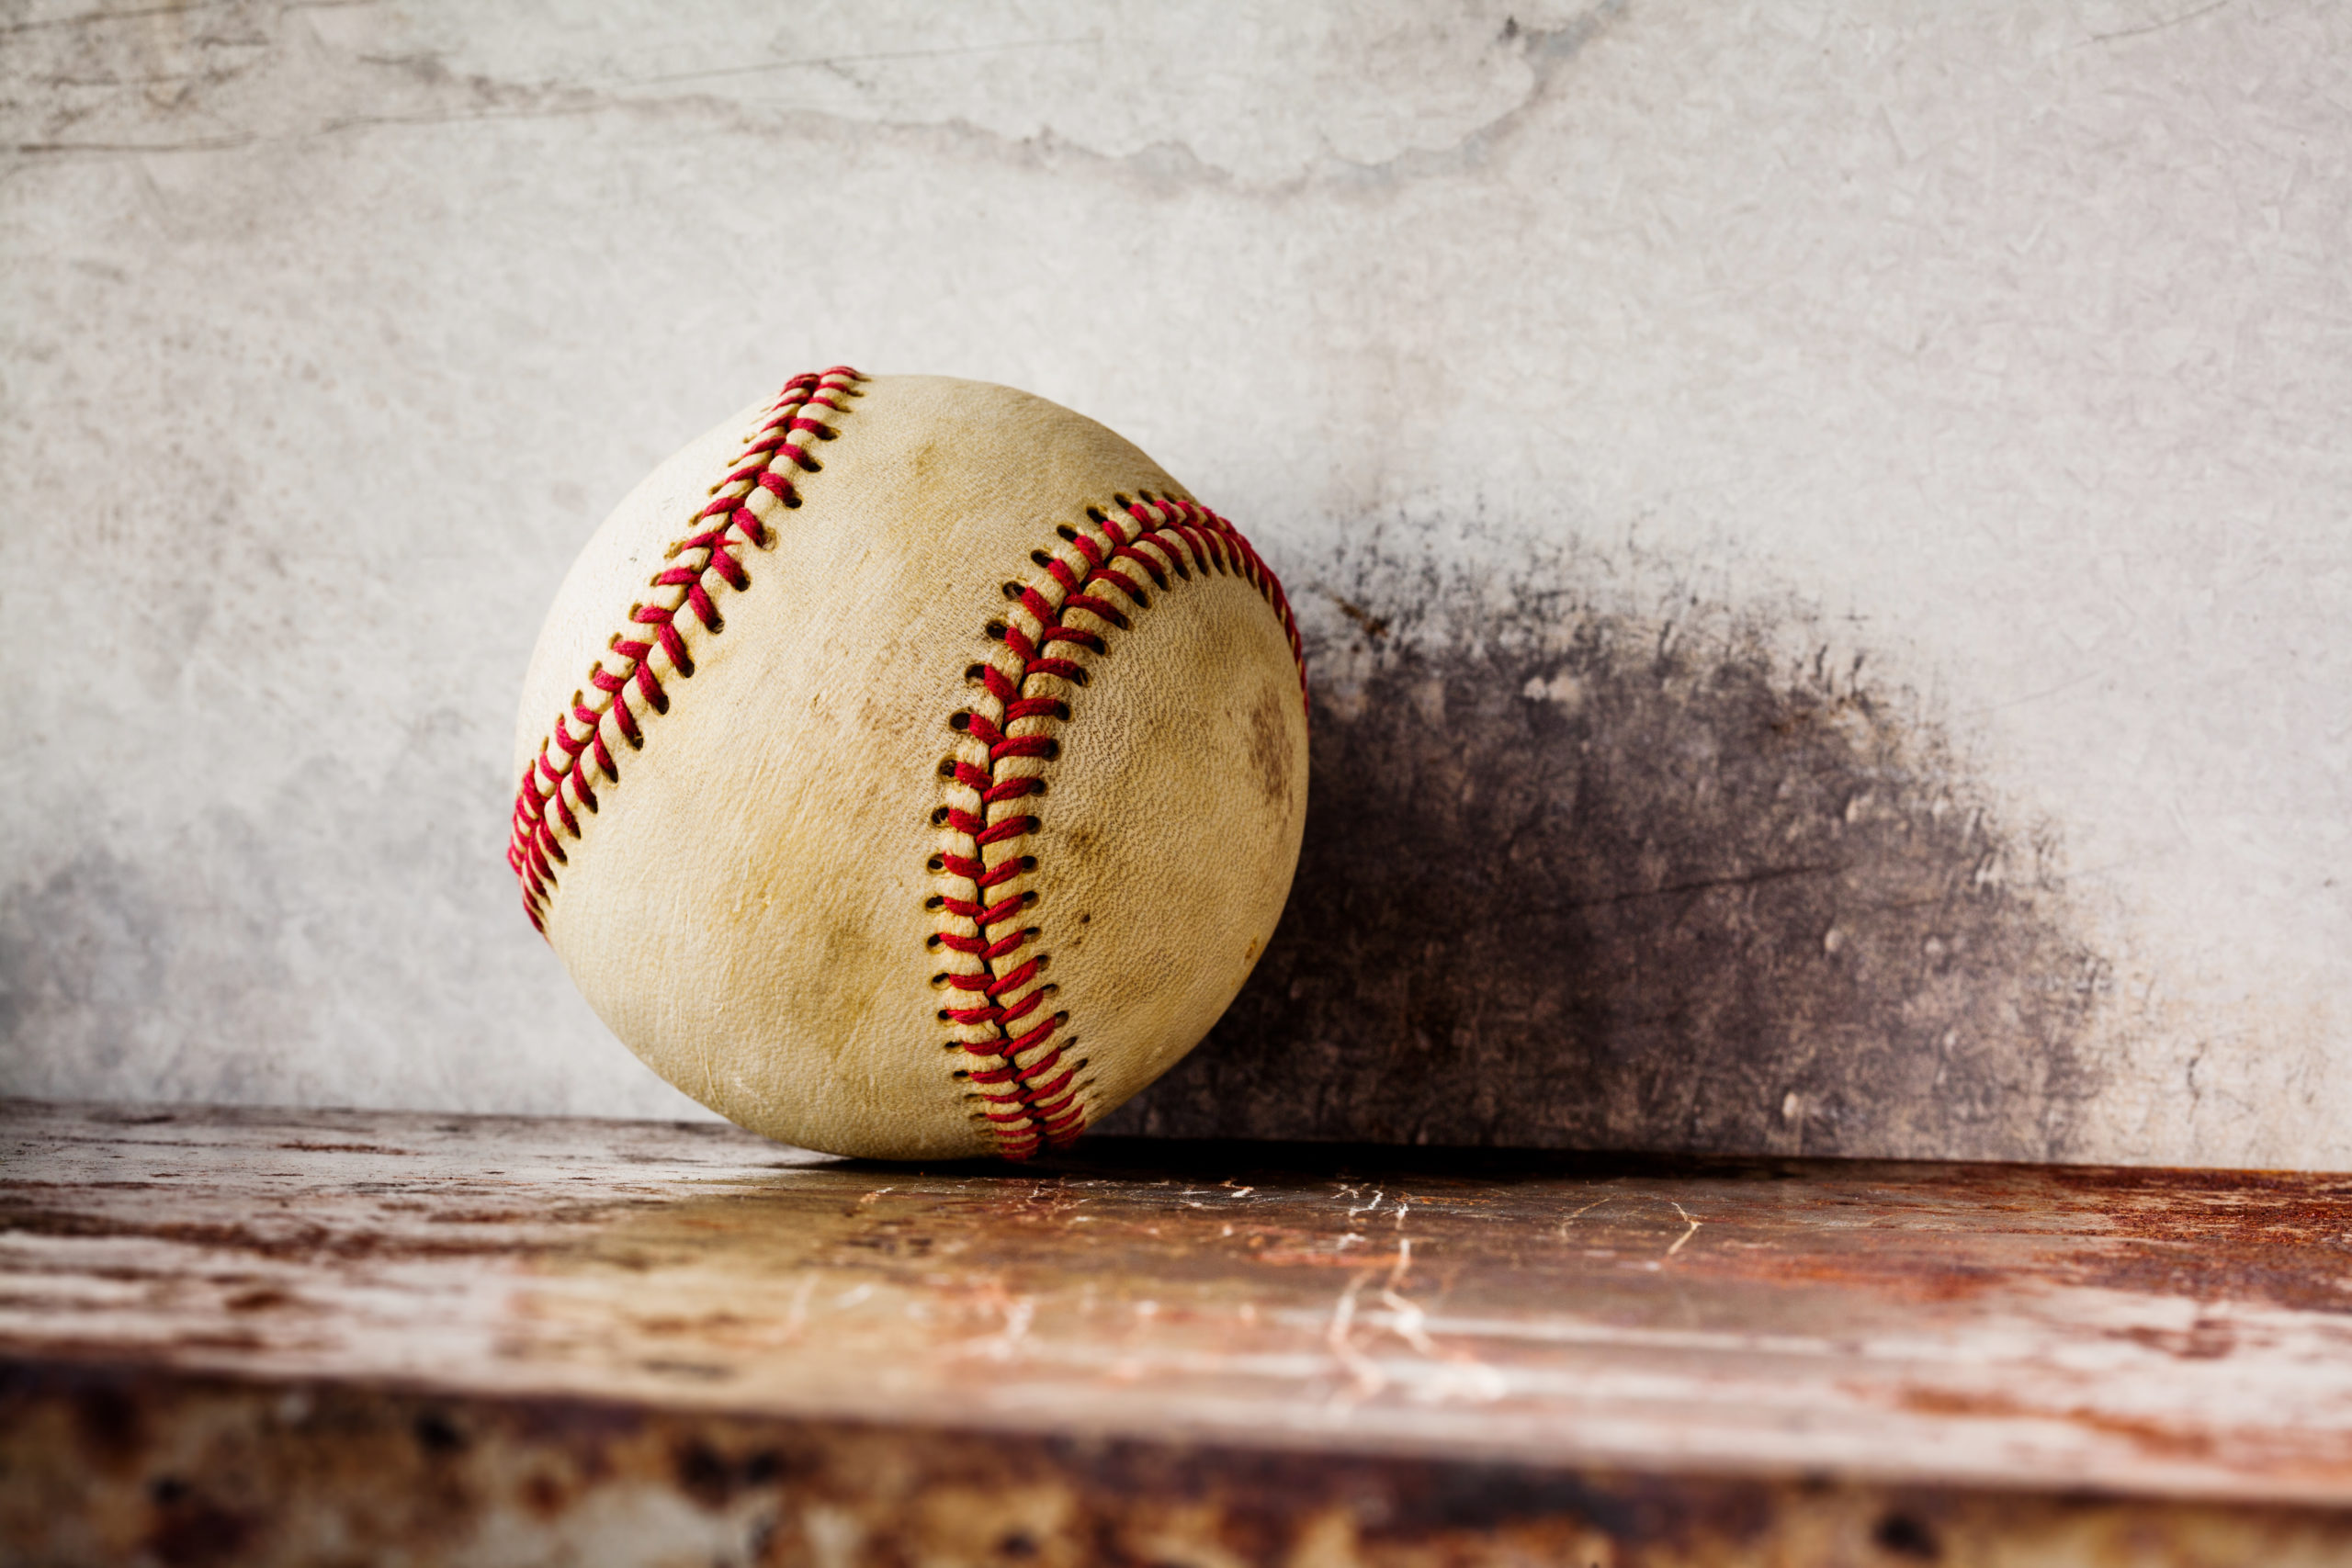 Madison City Schools apologised to the couple over the comment from the teens, believed to have been on the baseball team